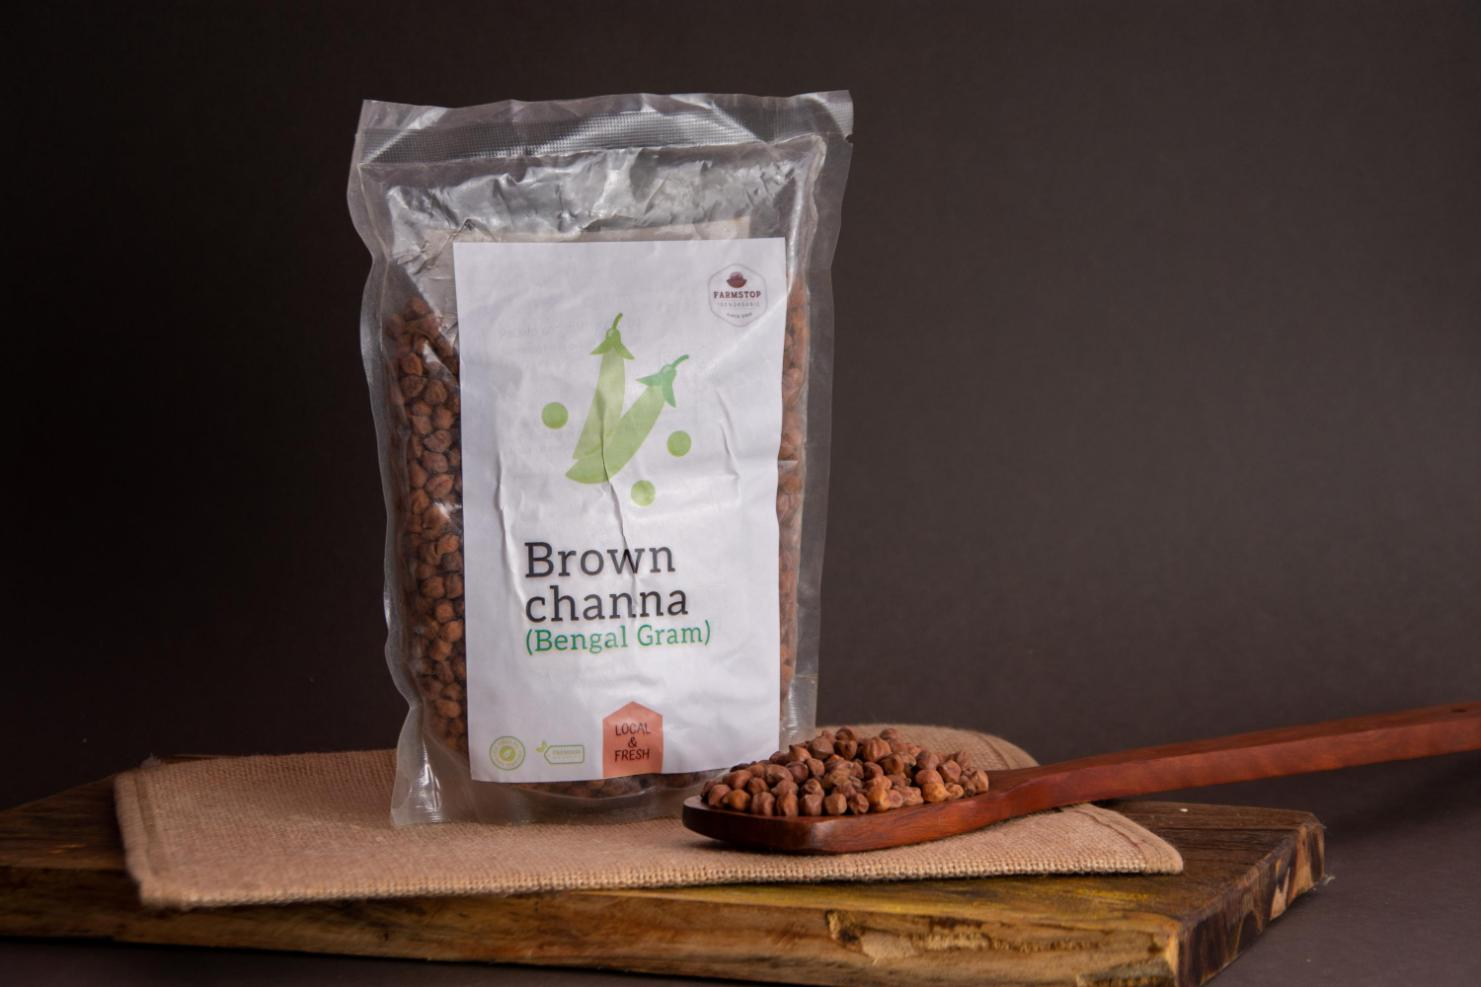 Brown Channa helps decrease cholesterol levels in the body,